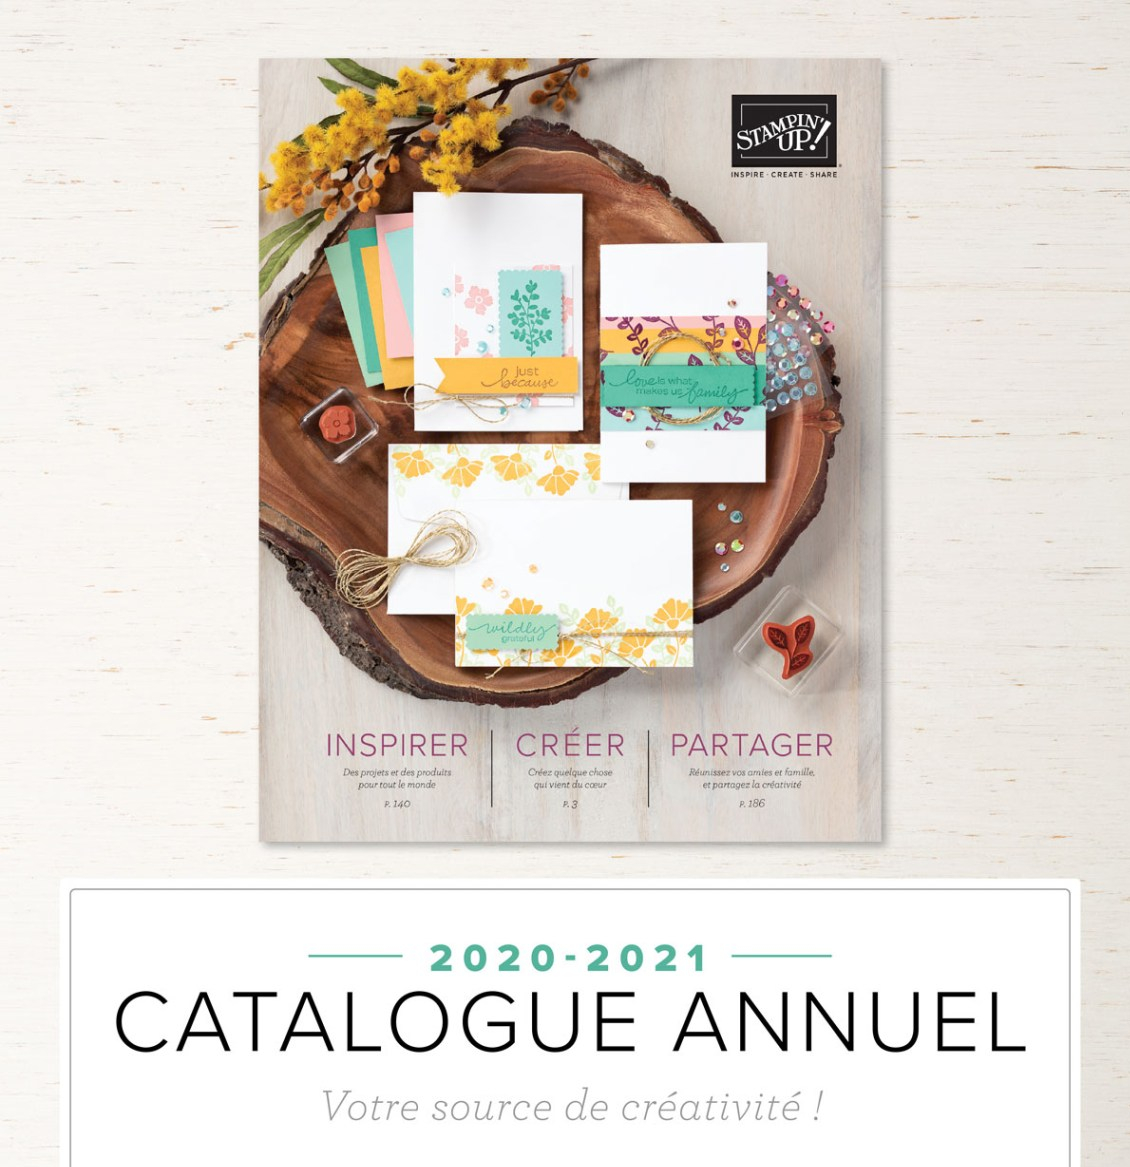 Image-catalogue-annuel-2020-2021